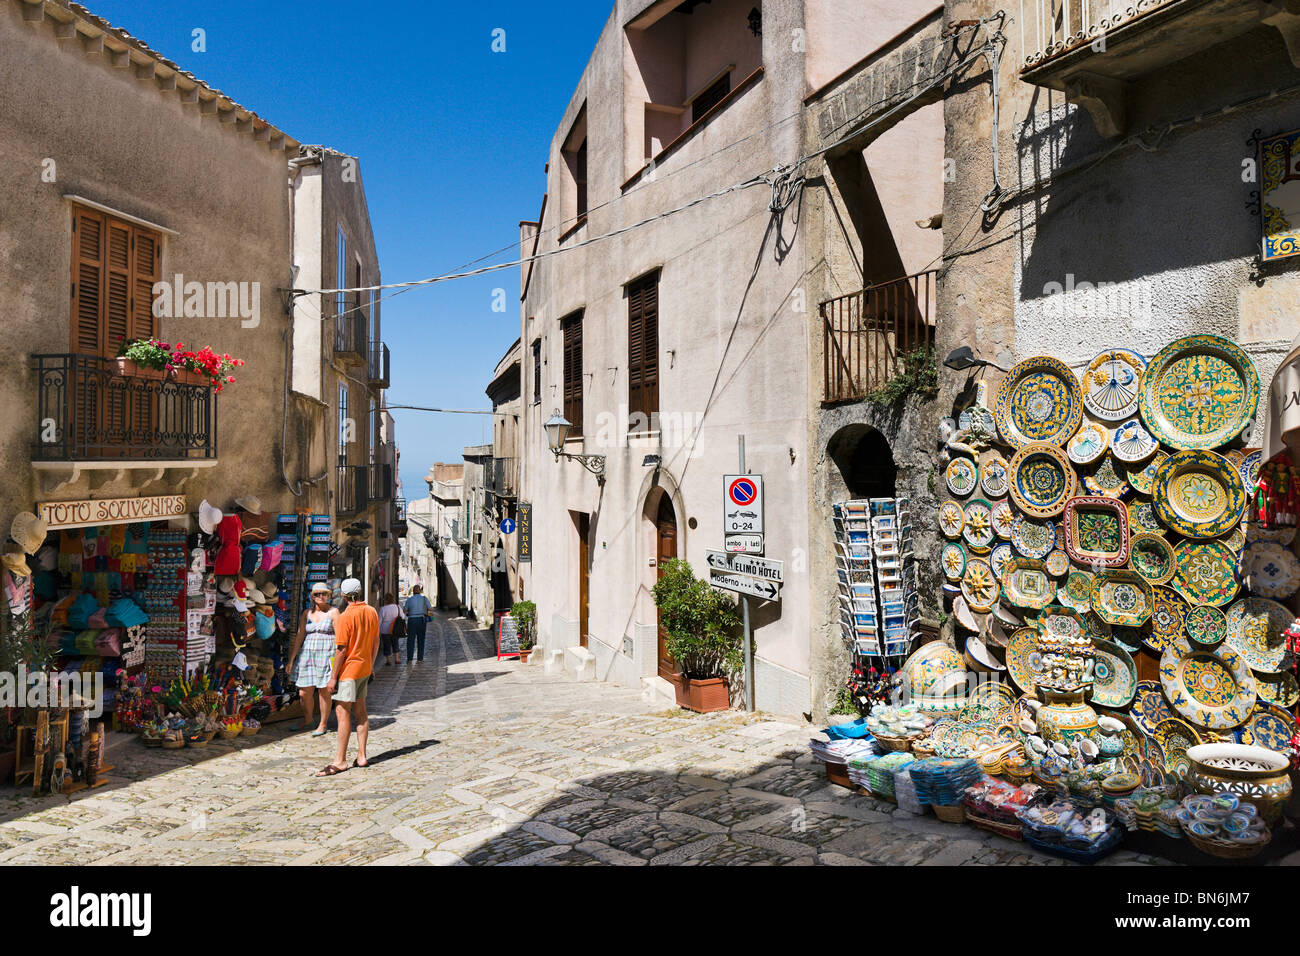 Typical street in the historic old town of Erice, Trapani region, North West Coast, Sicily, Italy - Stock Image